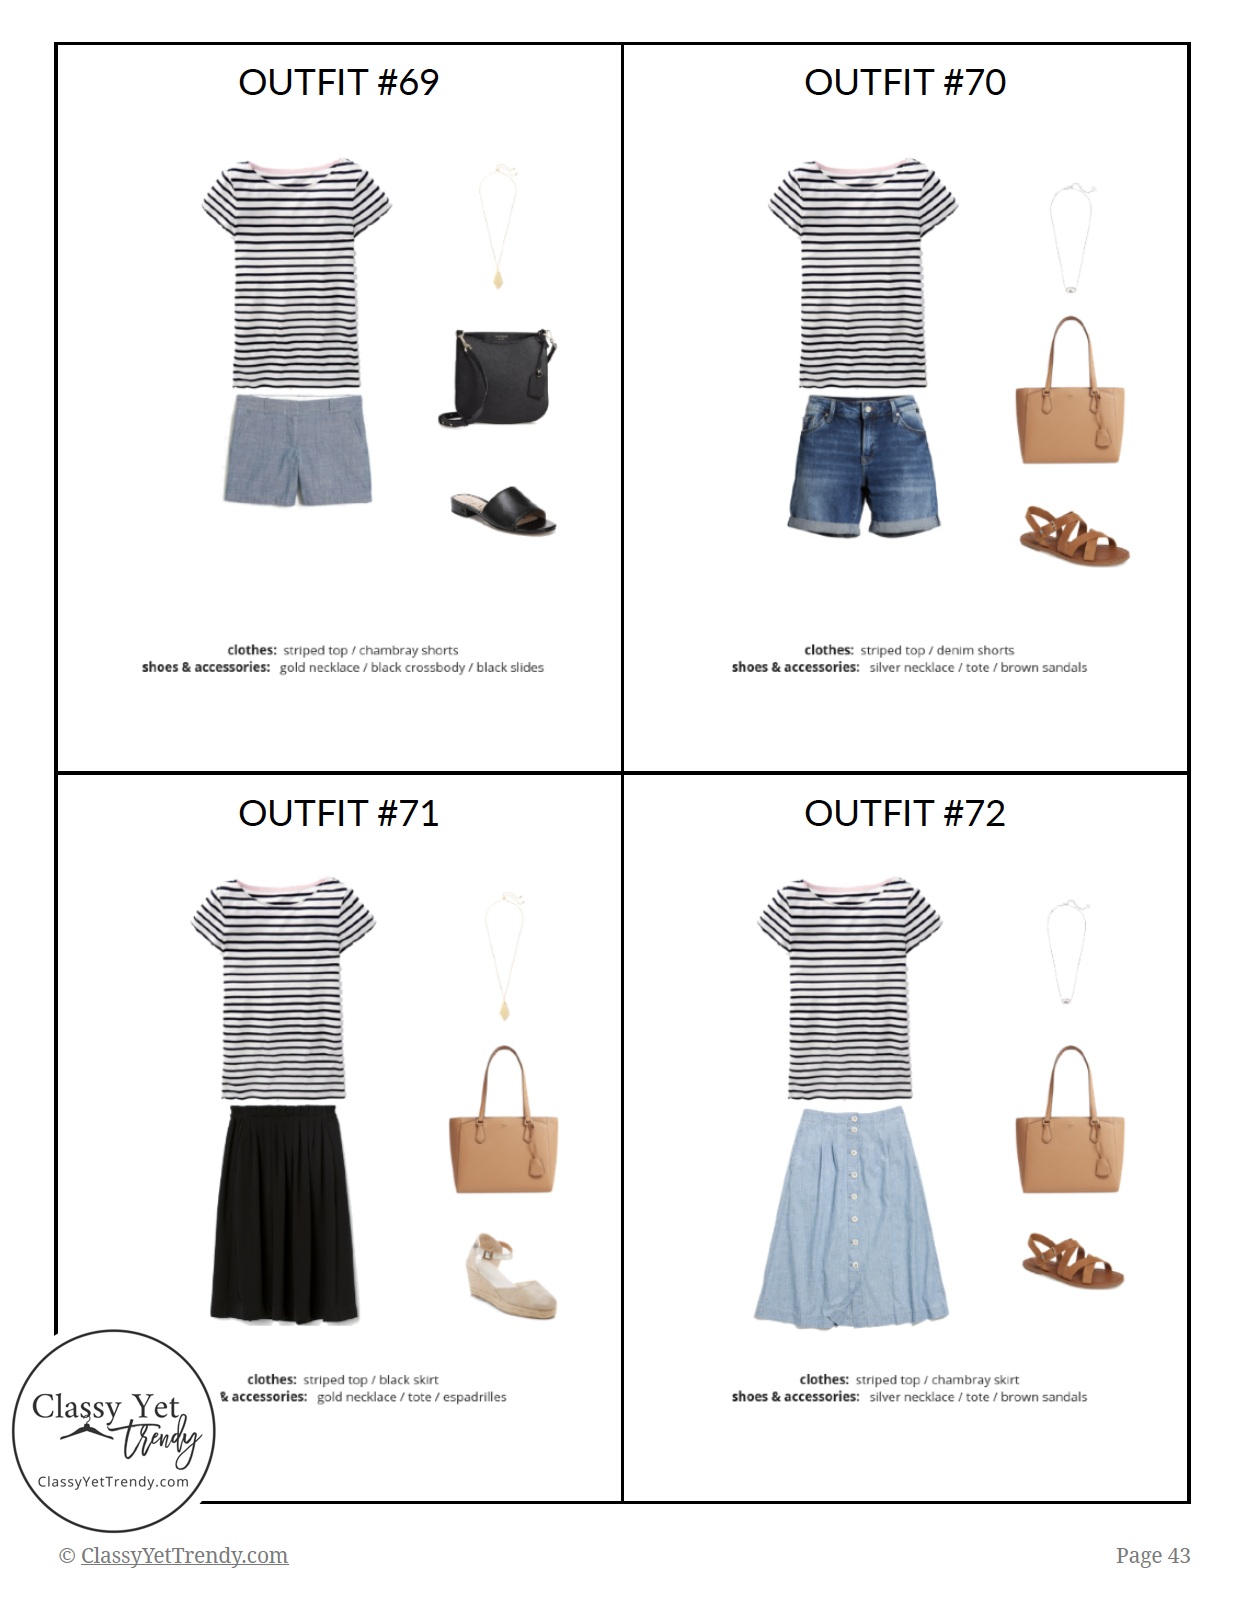 French Minimalist Capsule Wardrobe Summer 2019 - page 43